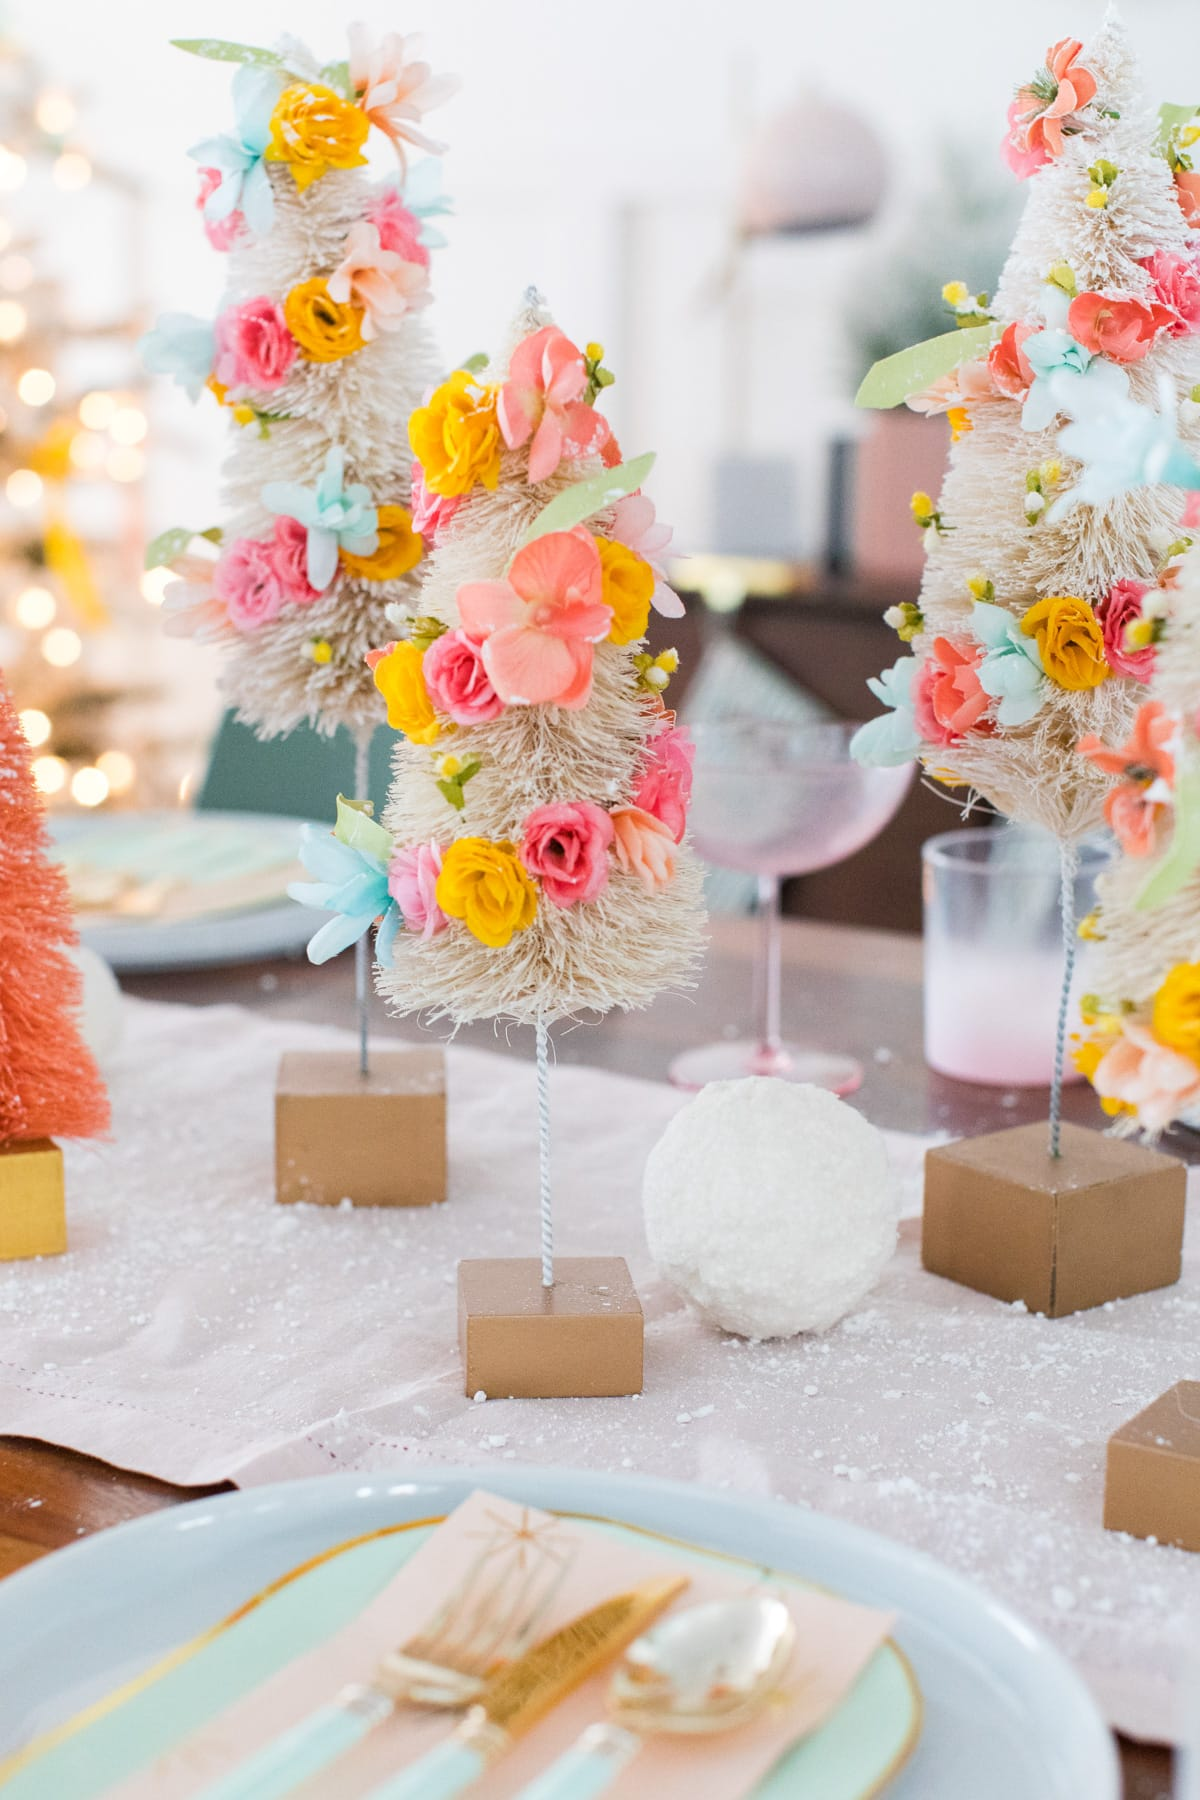 or mix them with faux snowballs - Faux Flower Bottle Brush Tree DIY Christmas Centerpiece Idea by top Houston lifestyle blogger Ashley Rose of Sugar and Cloth #diy #christmas #decor #howto #craft #entertaining #centerpiece #ideas